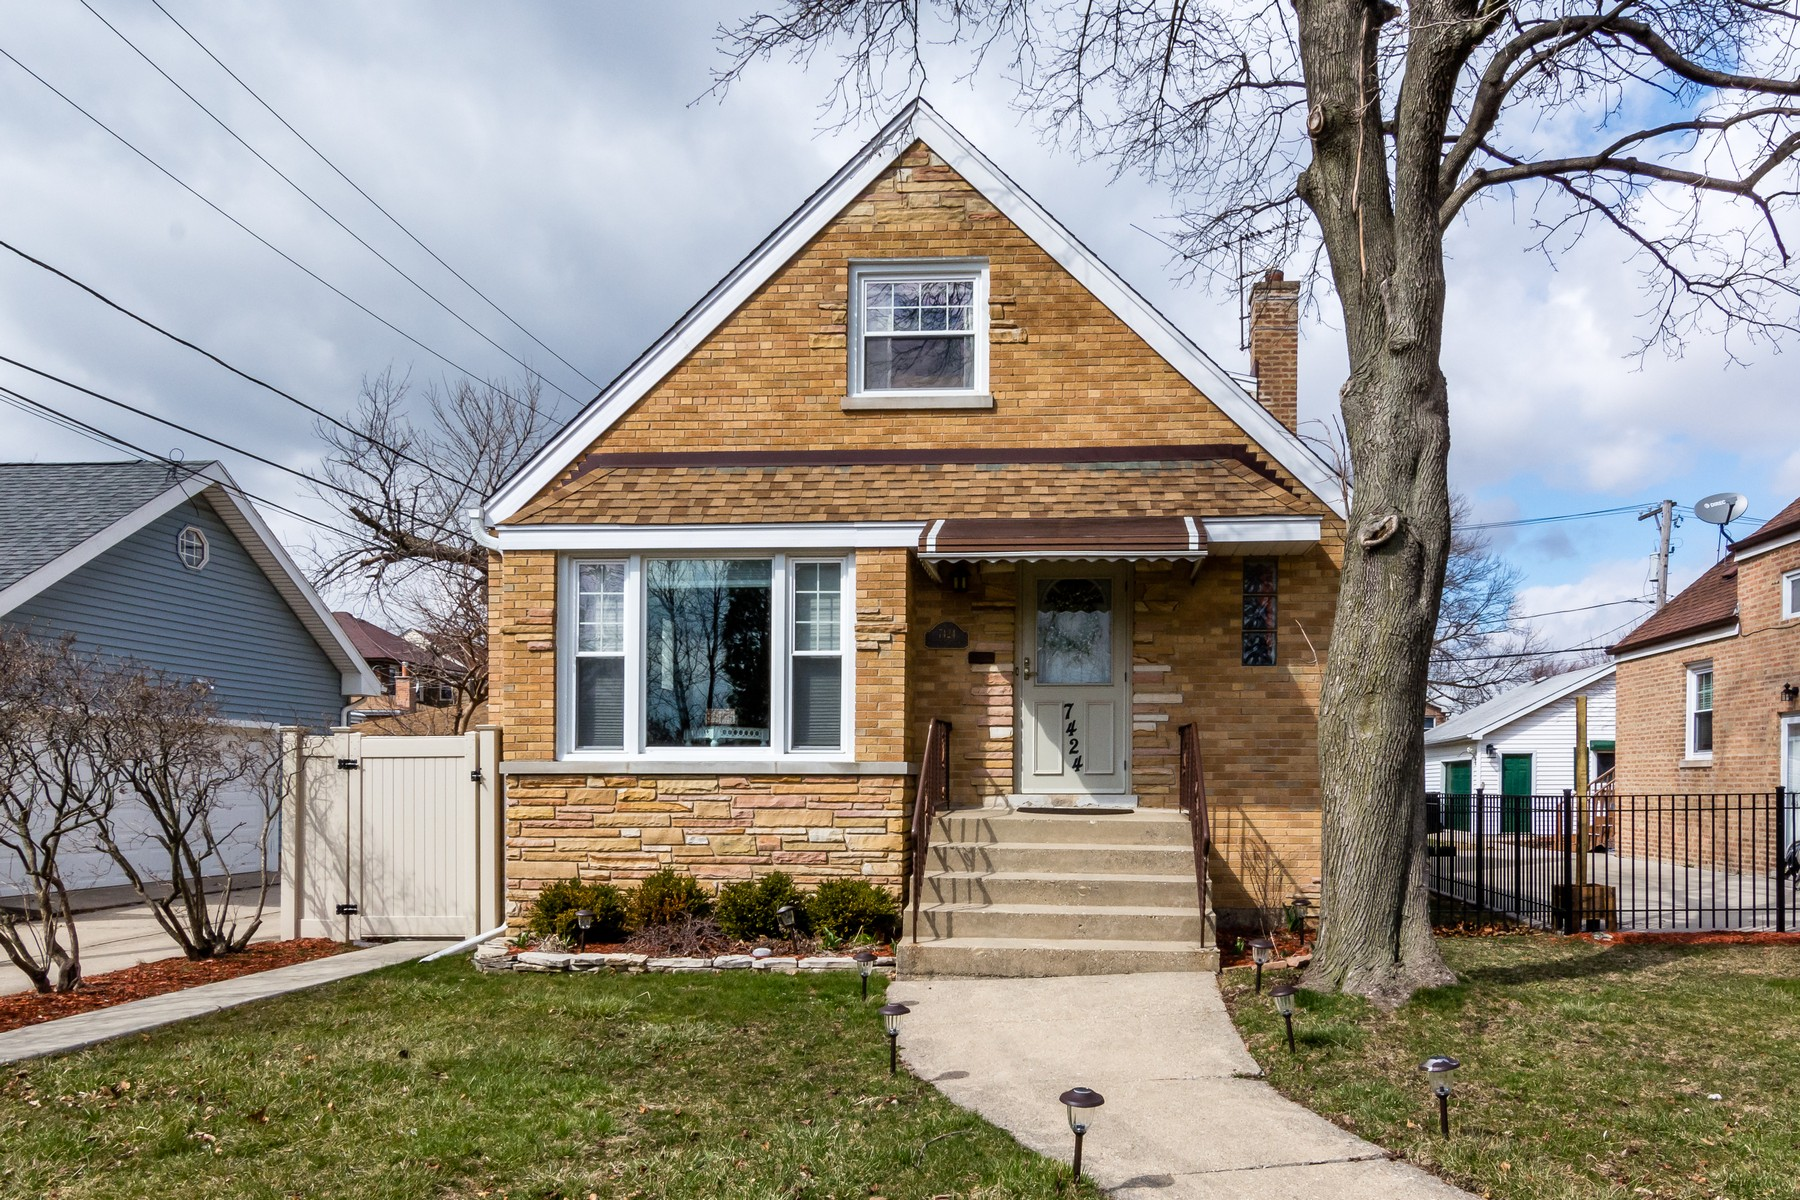 Single Family Home for Sale at Rehabbed Home on Corner Lot 7424 W Everell Avenue, Norwood Park, Chicago, Illinois, 60631 United States